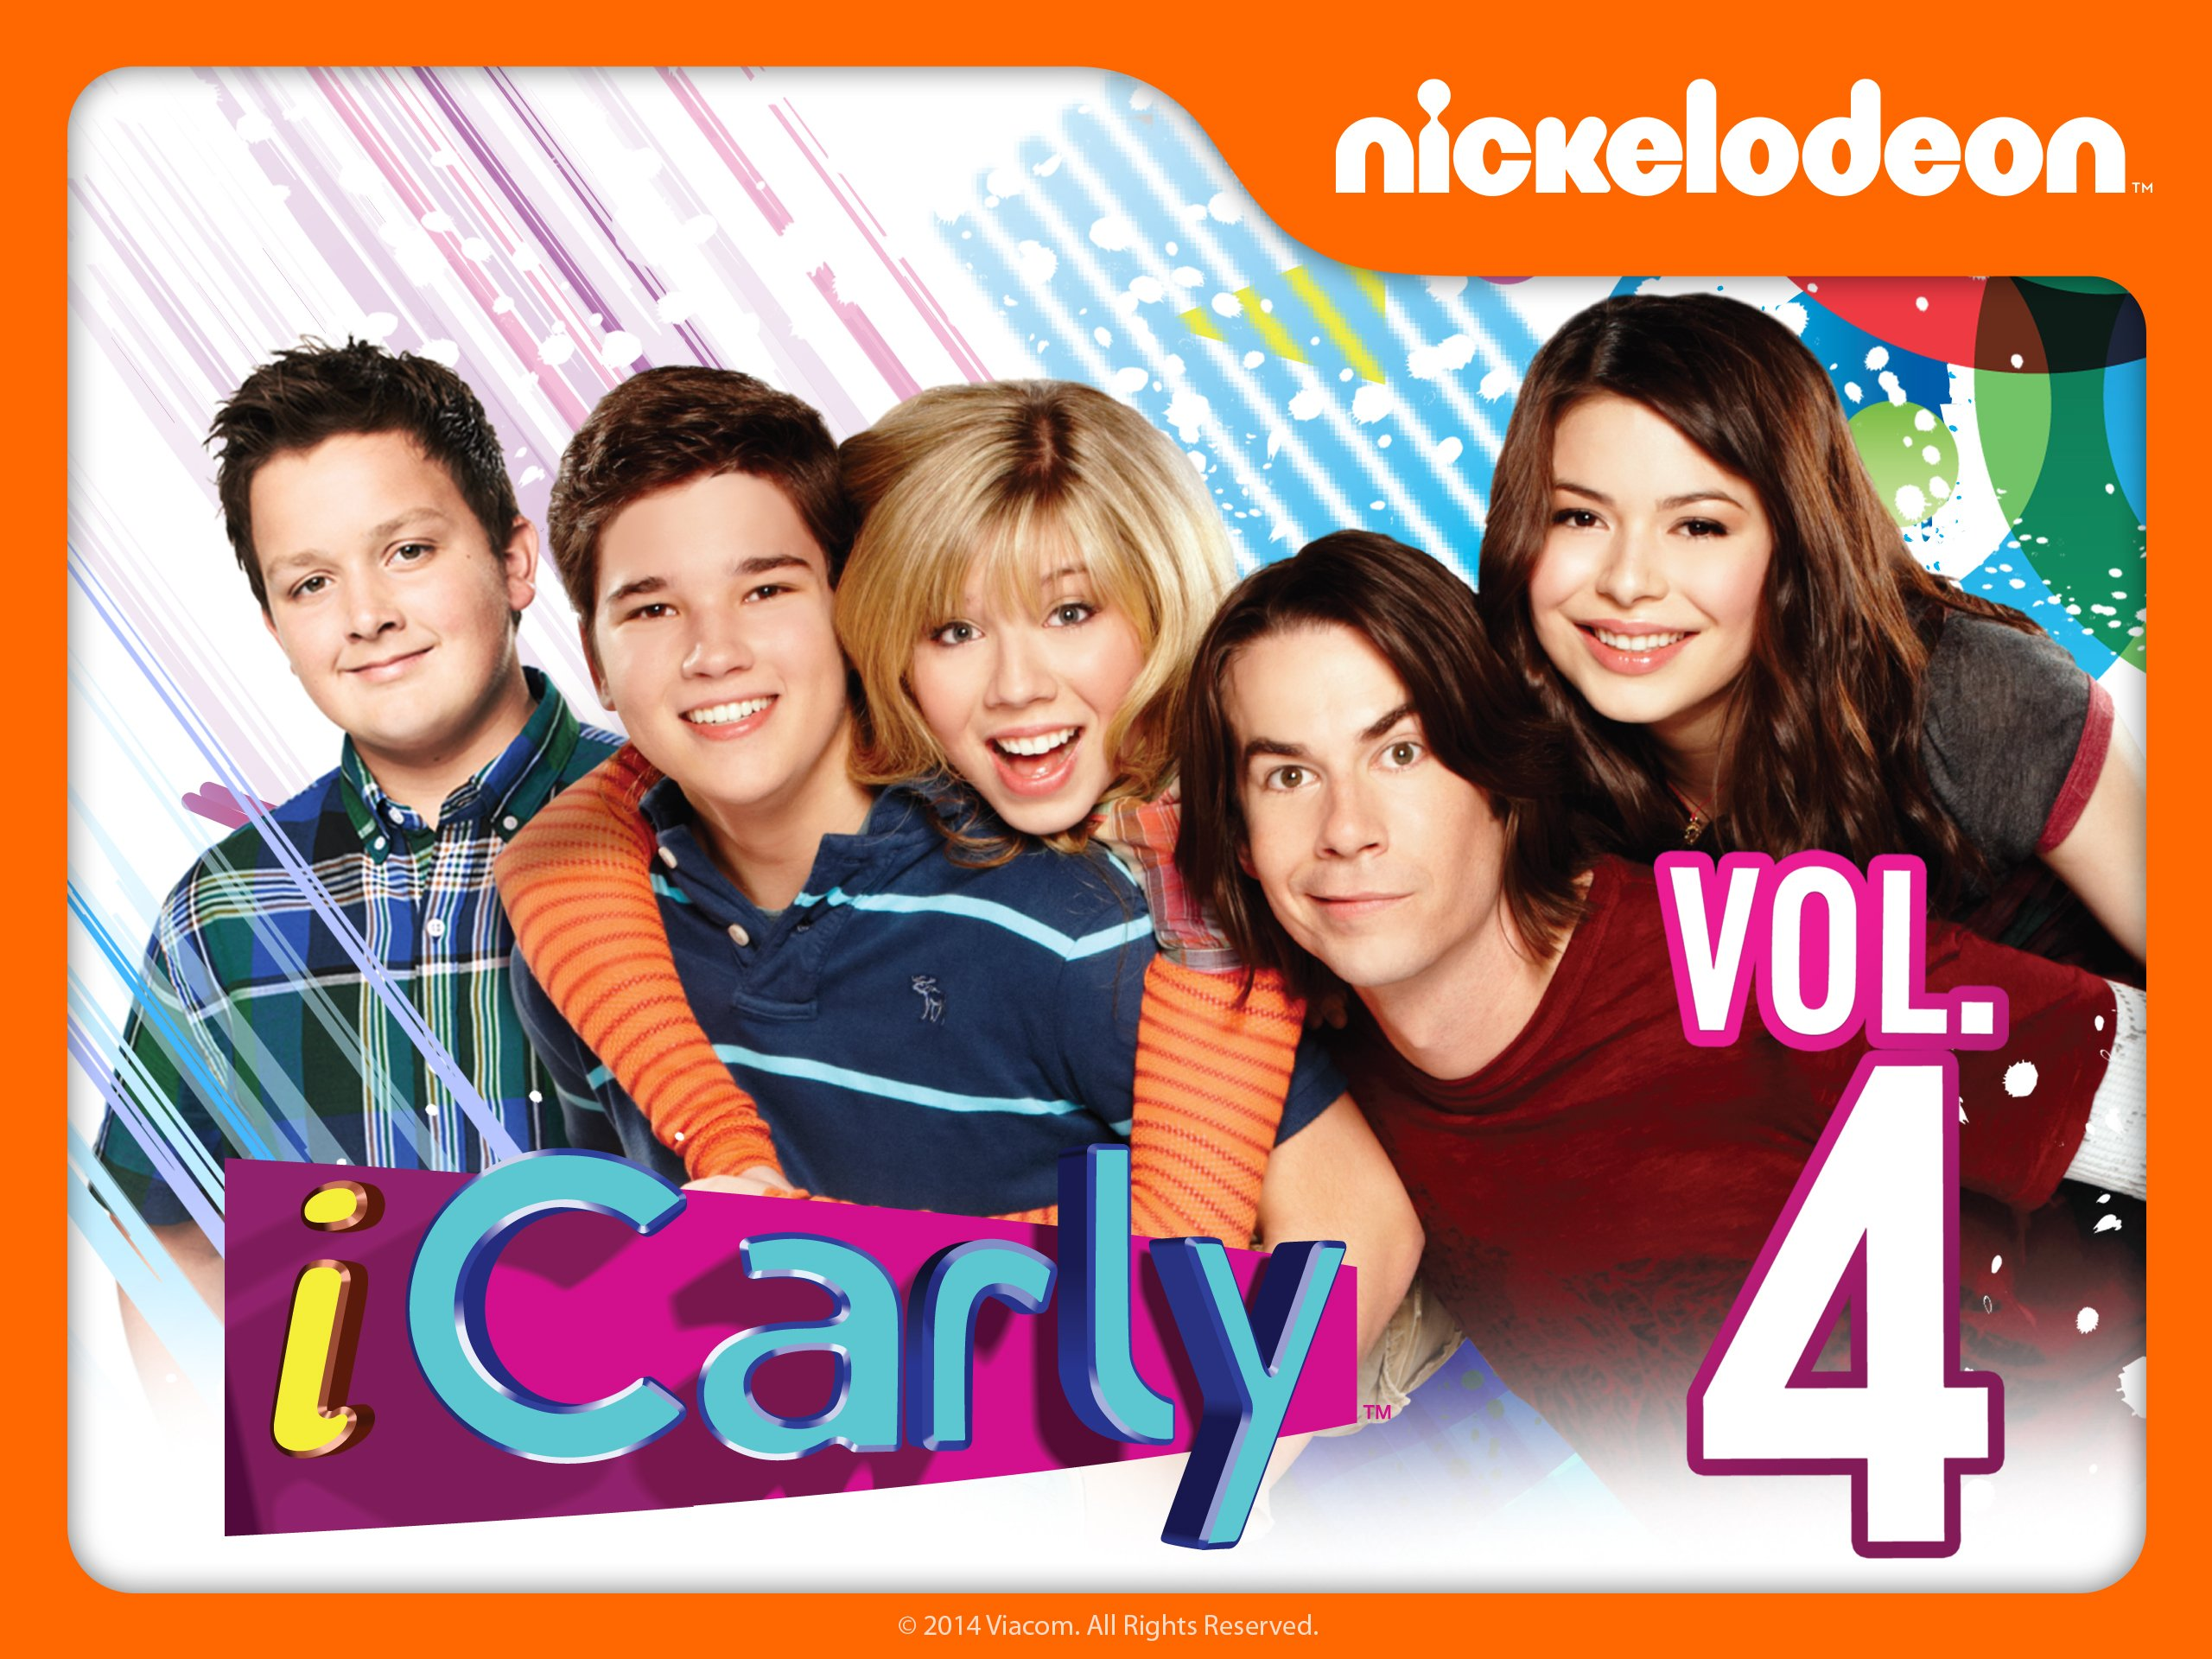 nathan kress wedding icarly. amazon.com: icarly season 4: miranda cosgrove, jenette mccurdy, nathan kress, jerry trainor: amazon digital services llc kress wedding icarly m